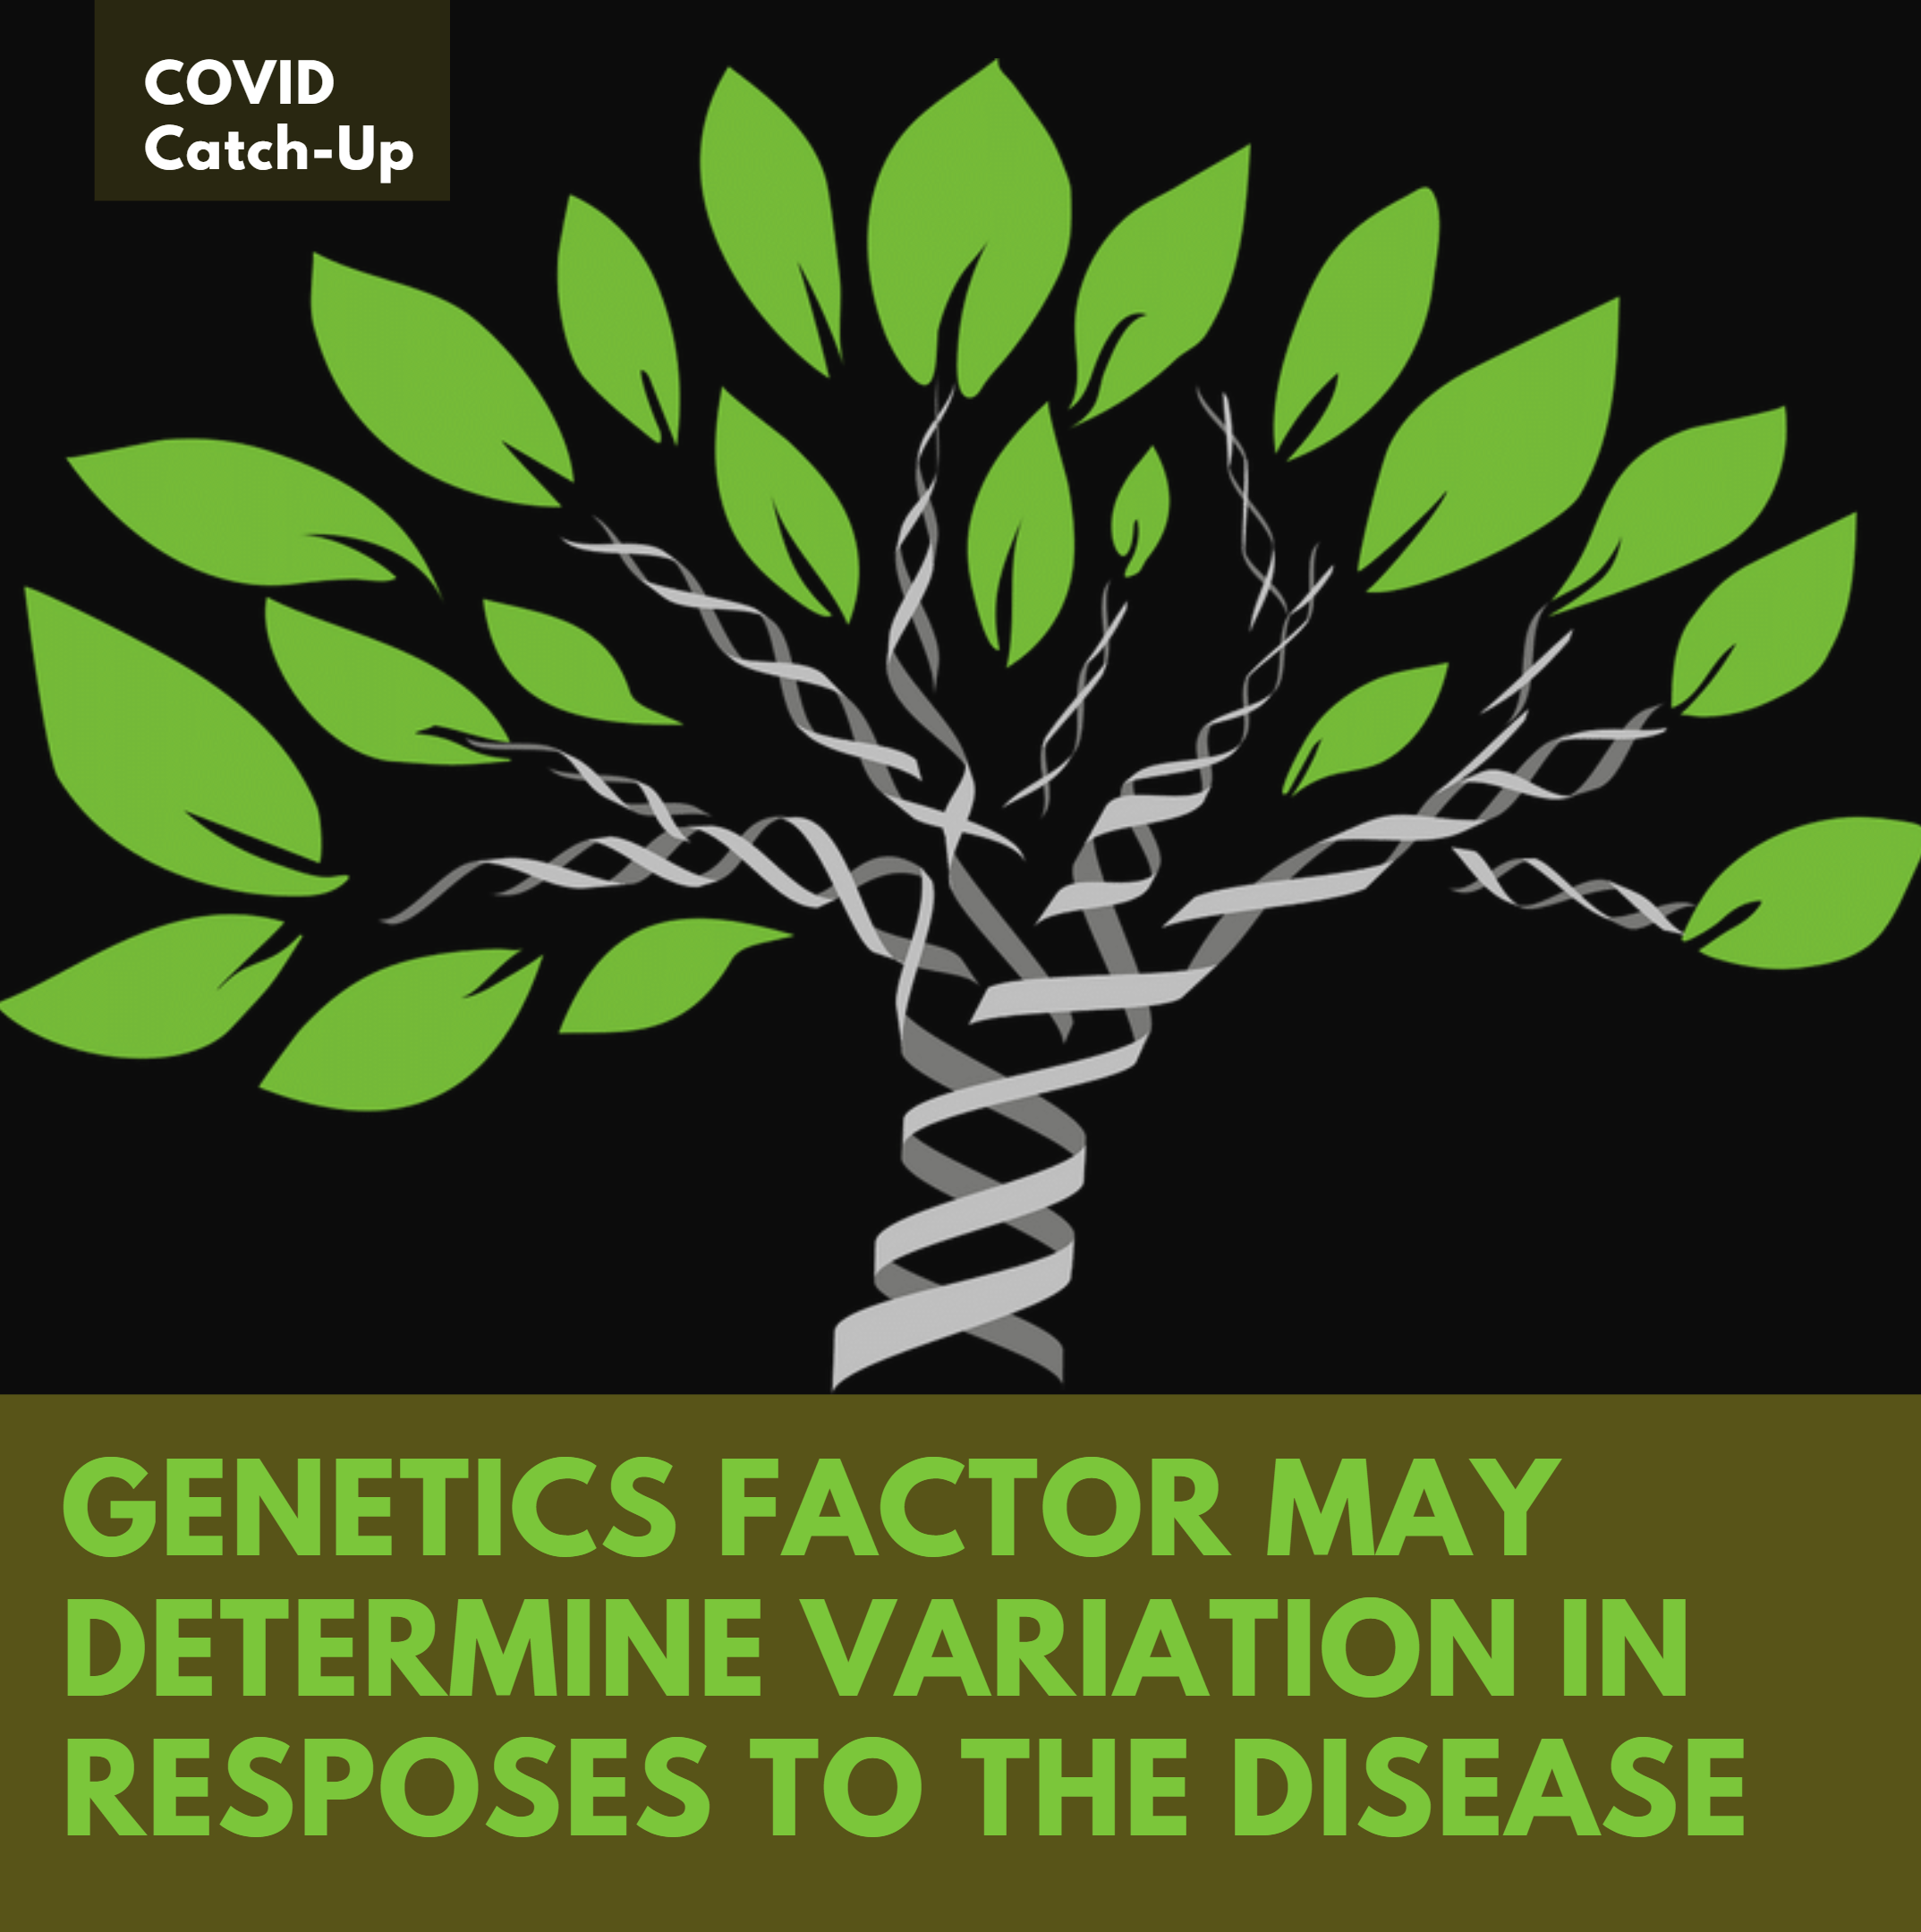 11/1 News Flash 5: Why Does COVID-19 Affect Us Differently? The Answer May Lie In Our Genes